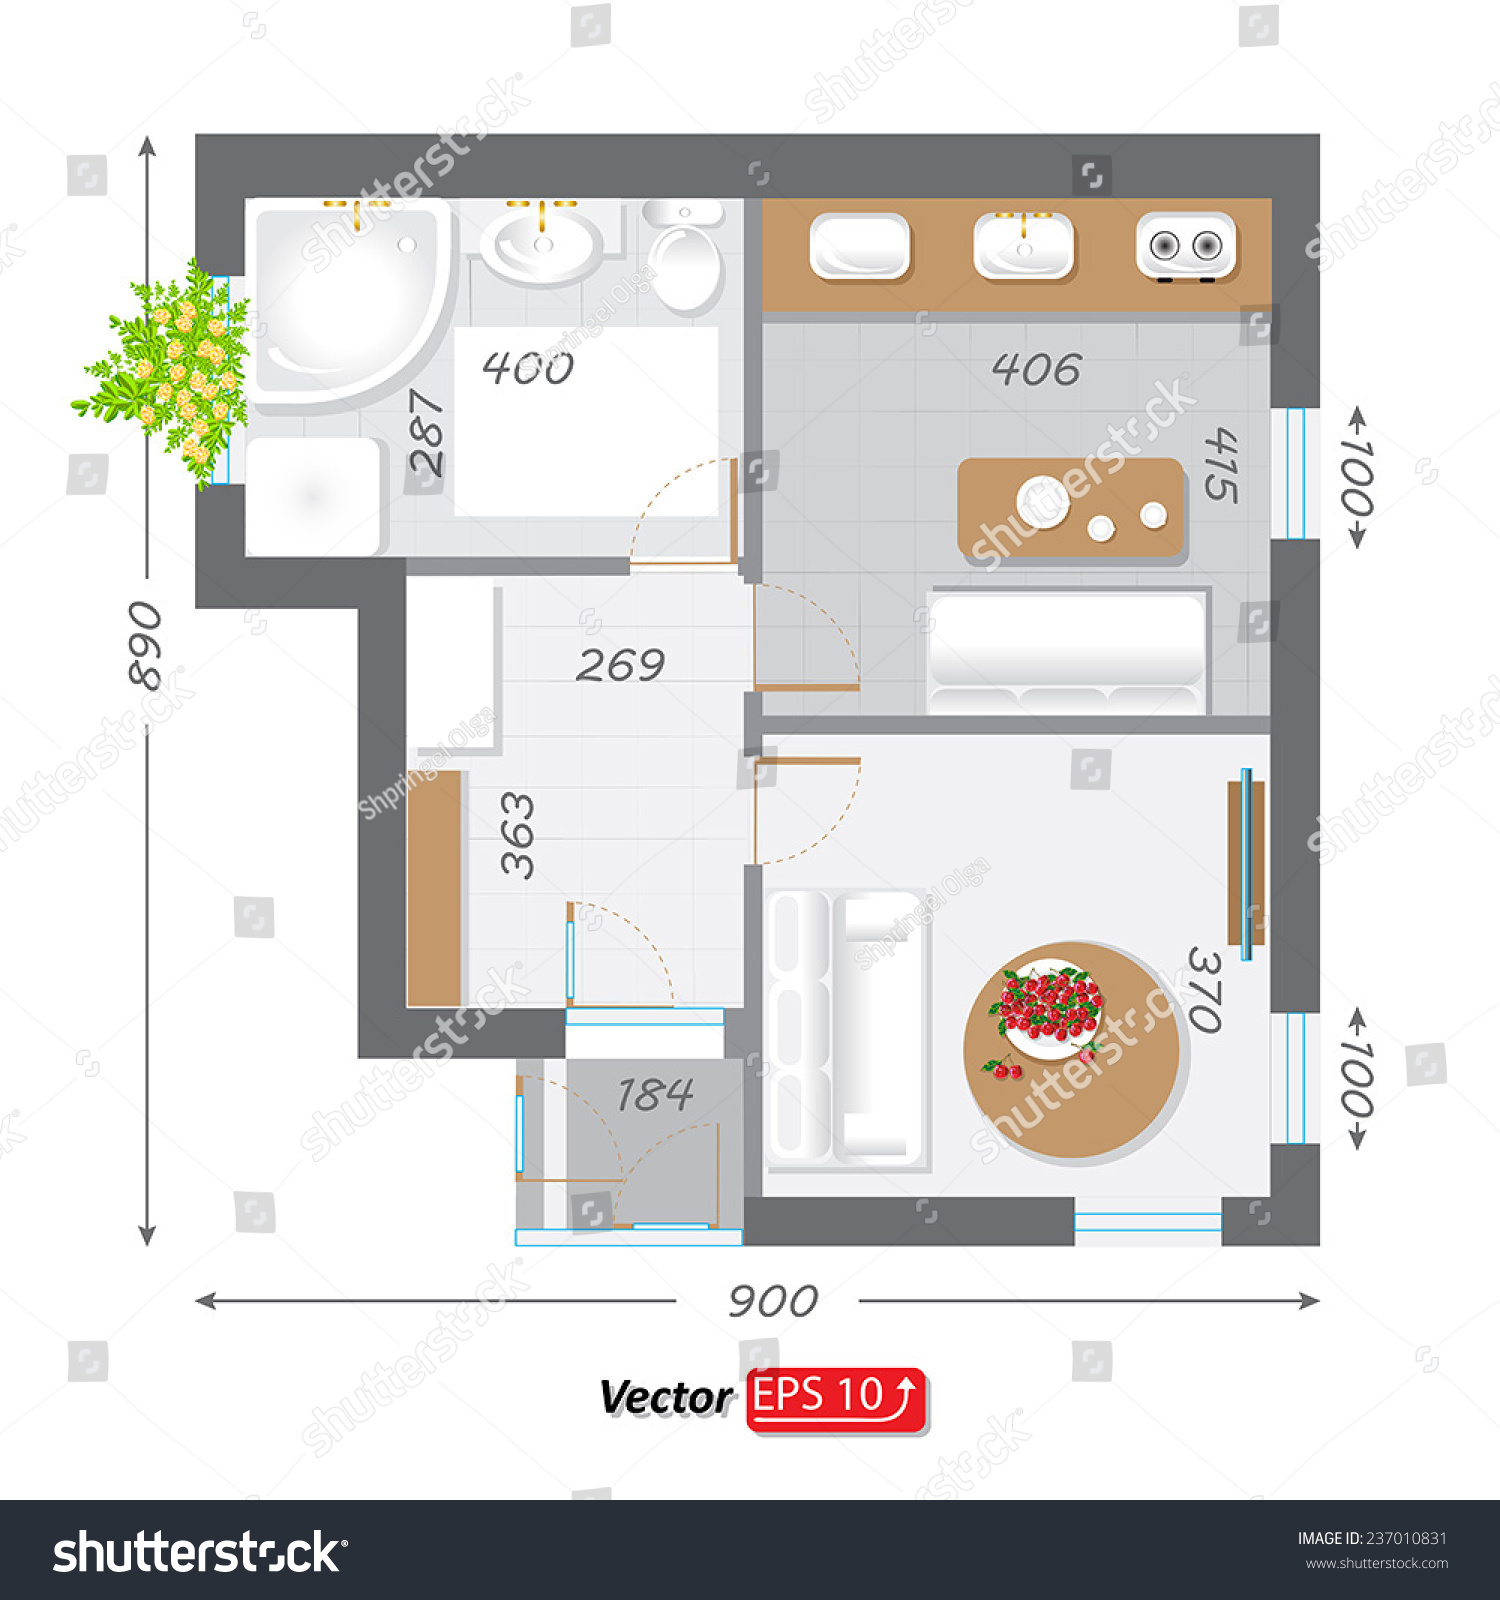 Of Architectural Project Ground Floor Plan Floorplan House      Of Architectural Project Ground Floor Plan Floorplan House Home Building Architecture Blueprint Layout Detailed Architectural Plan